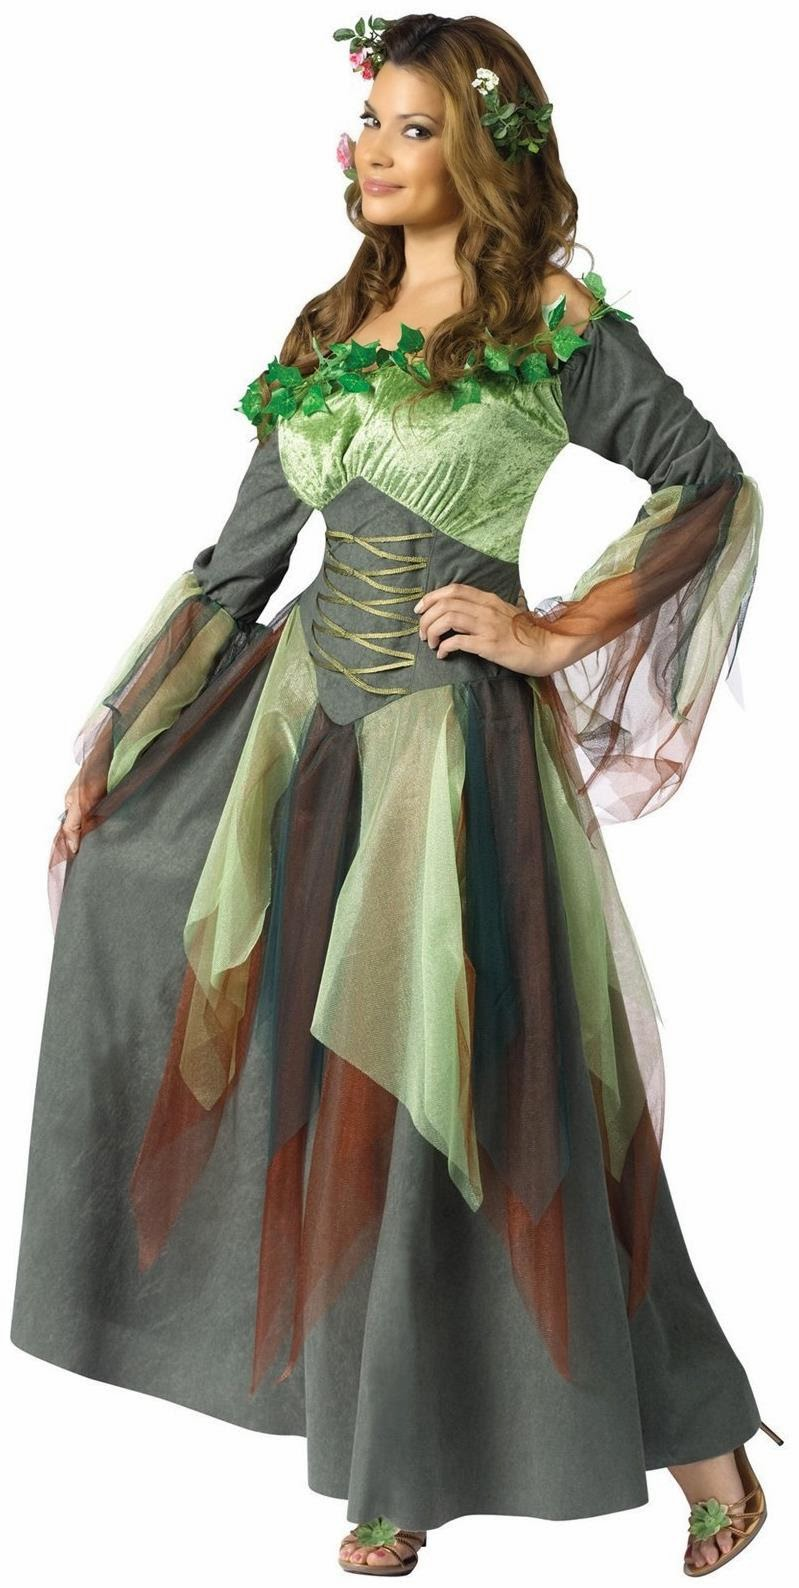 http://www.partybell.com/p-2364-mother-nature-adult-costume.aspx?utm_source=Blog&utm_medium=Social&utm_campaign=Celebrate-greek-costume-ideas